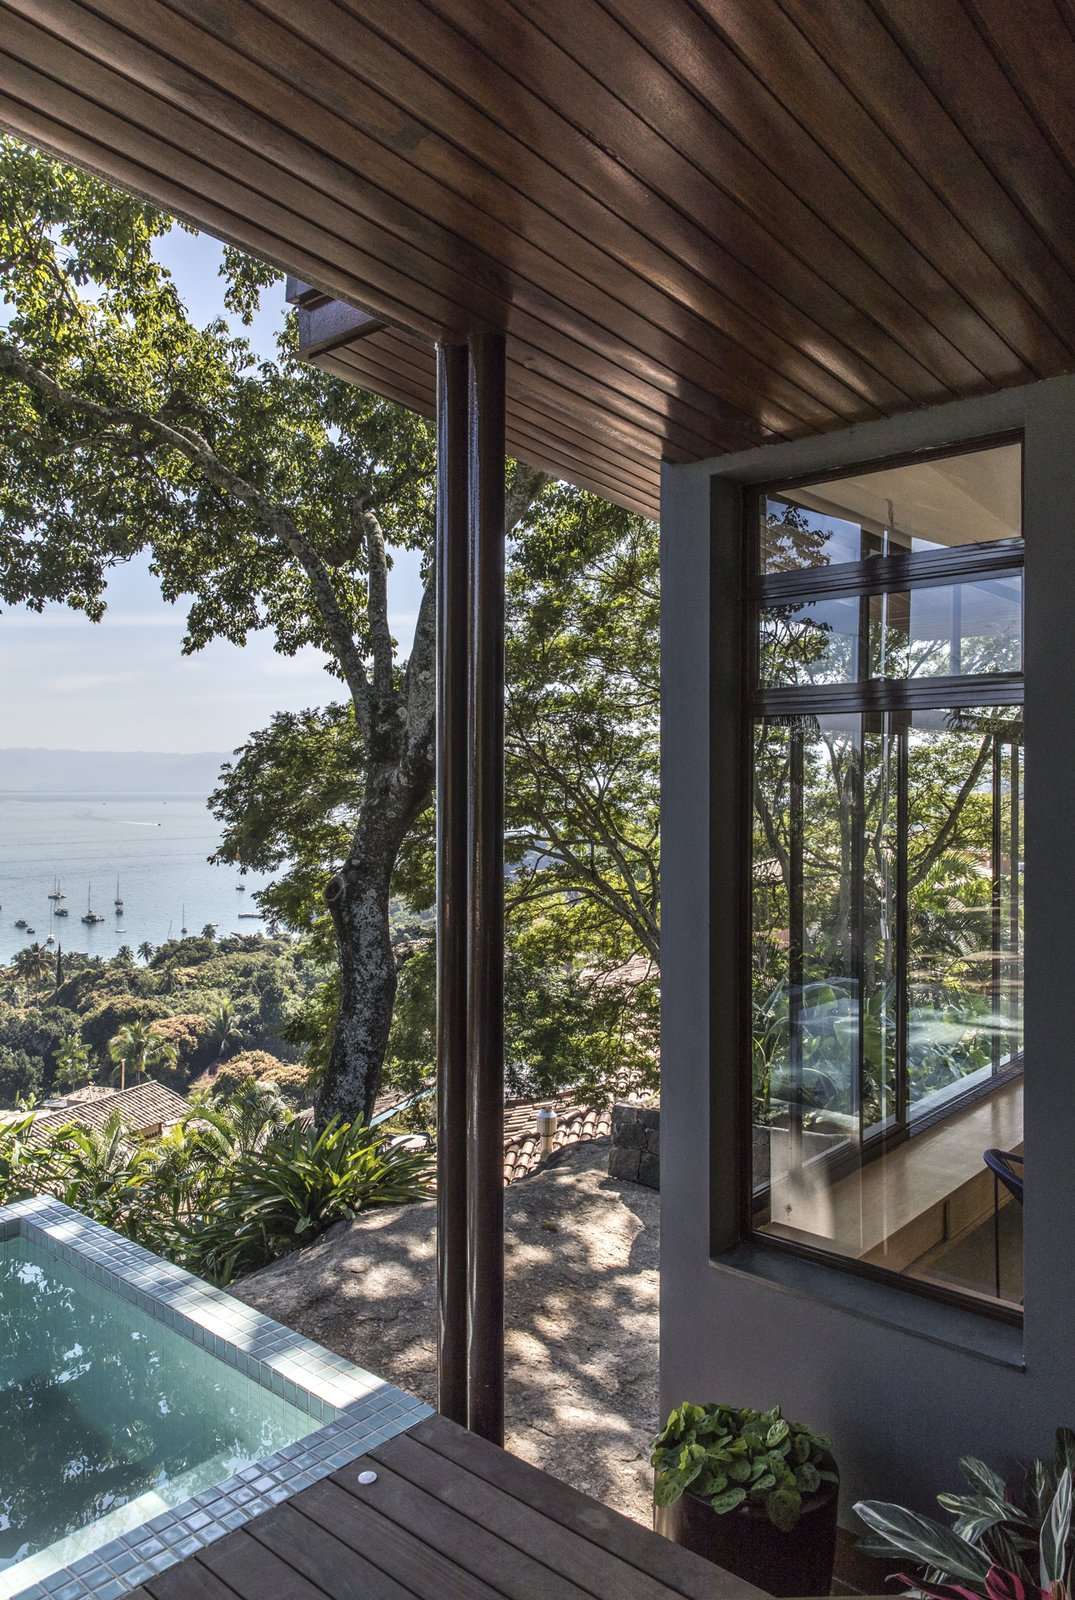 Outdoor, Decking Patio, Porch, Deck, Metal Patio, Porch, Deck, Small Pools, Tubs, Shower, Wood Patio, Porch, Deck, Grass, Front Yard, and Trees designed by Estúdio Minke  Casa da Pedra (The stone house)